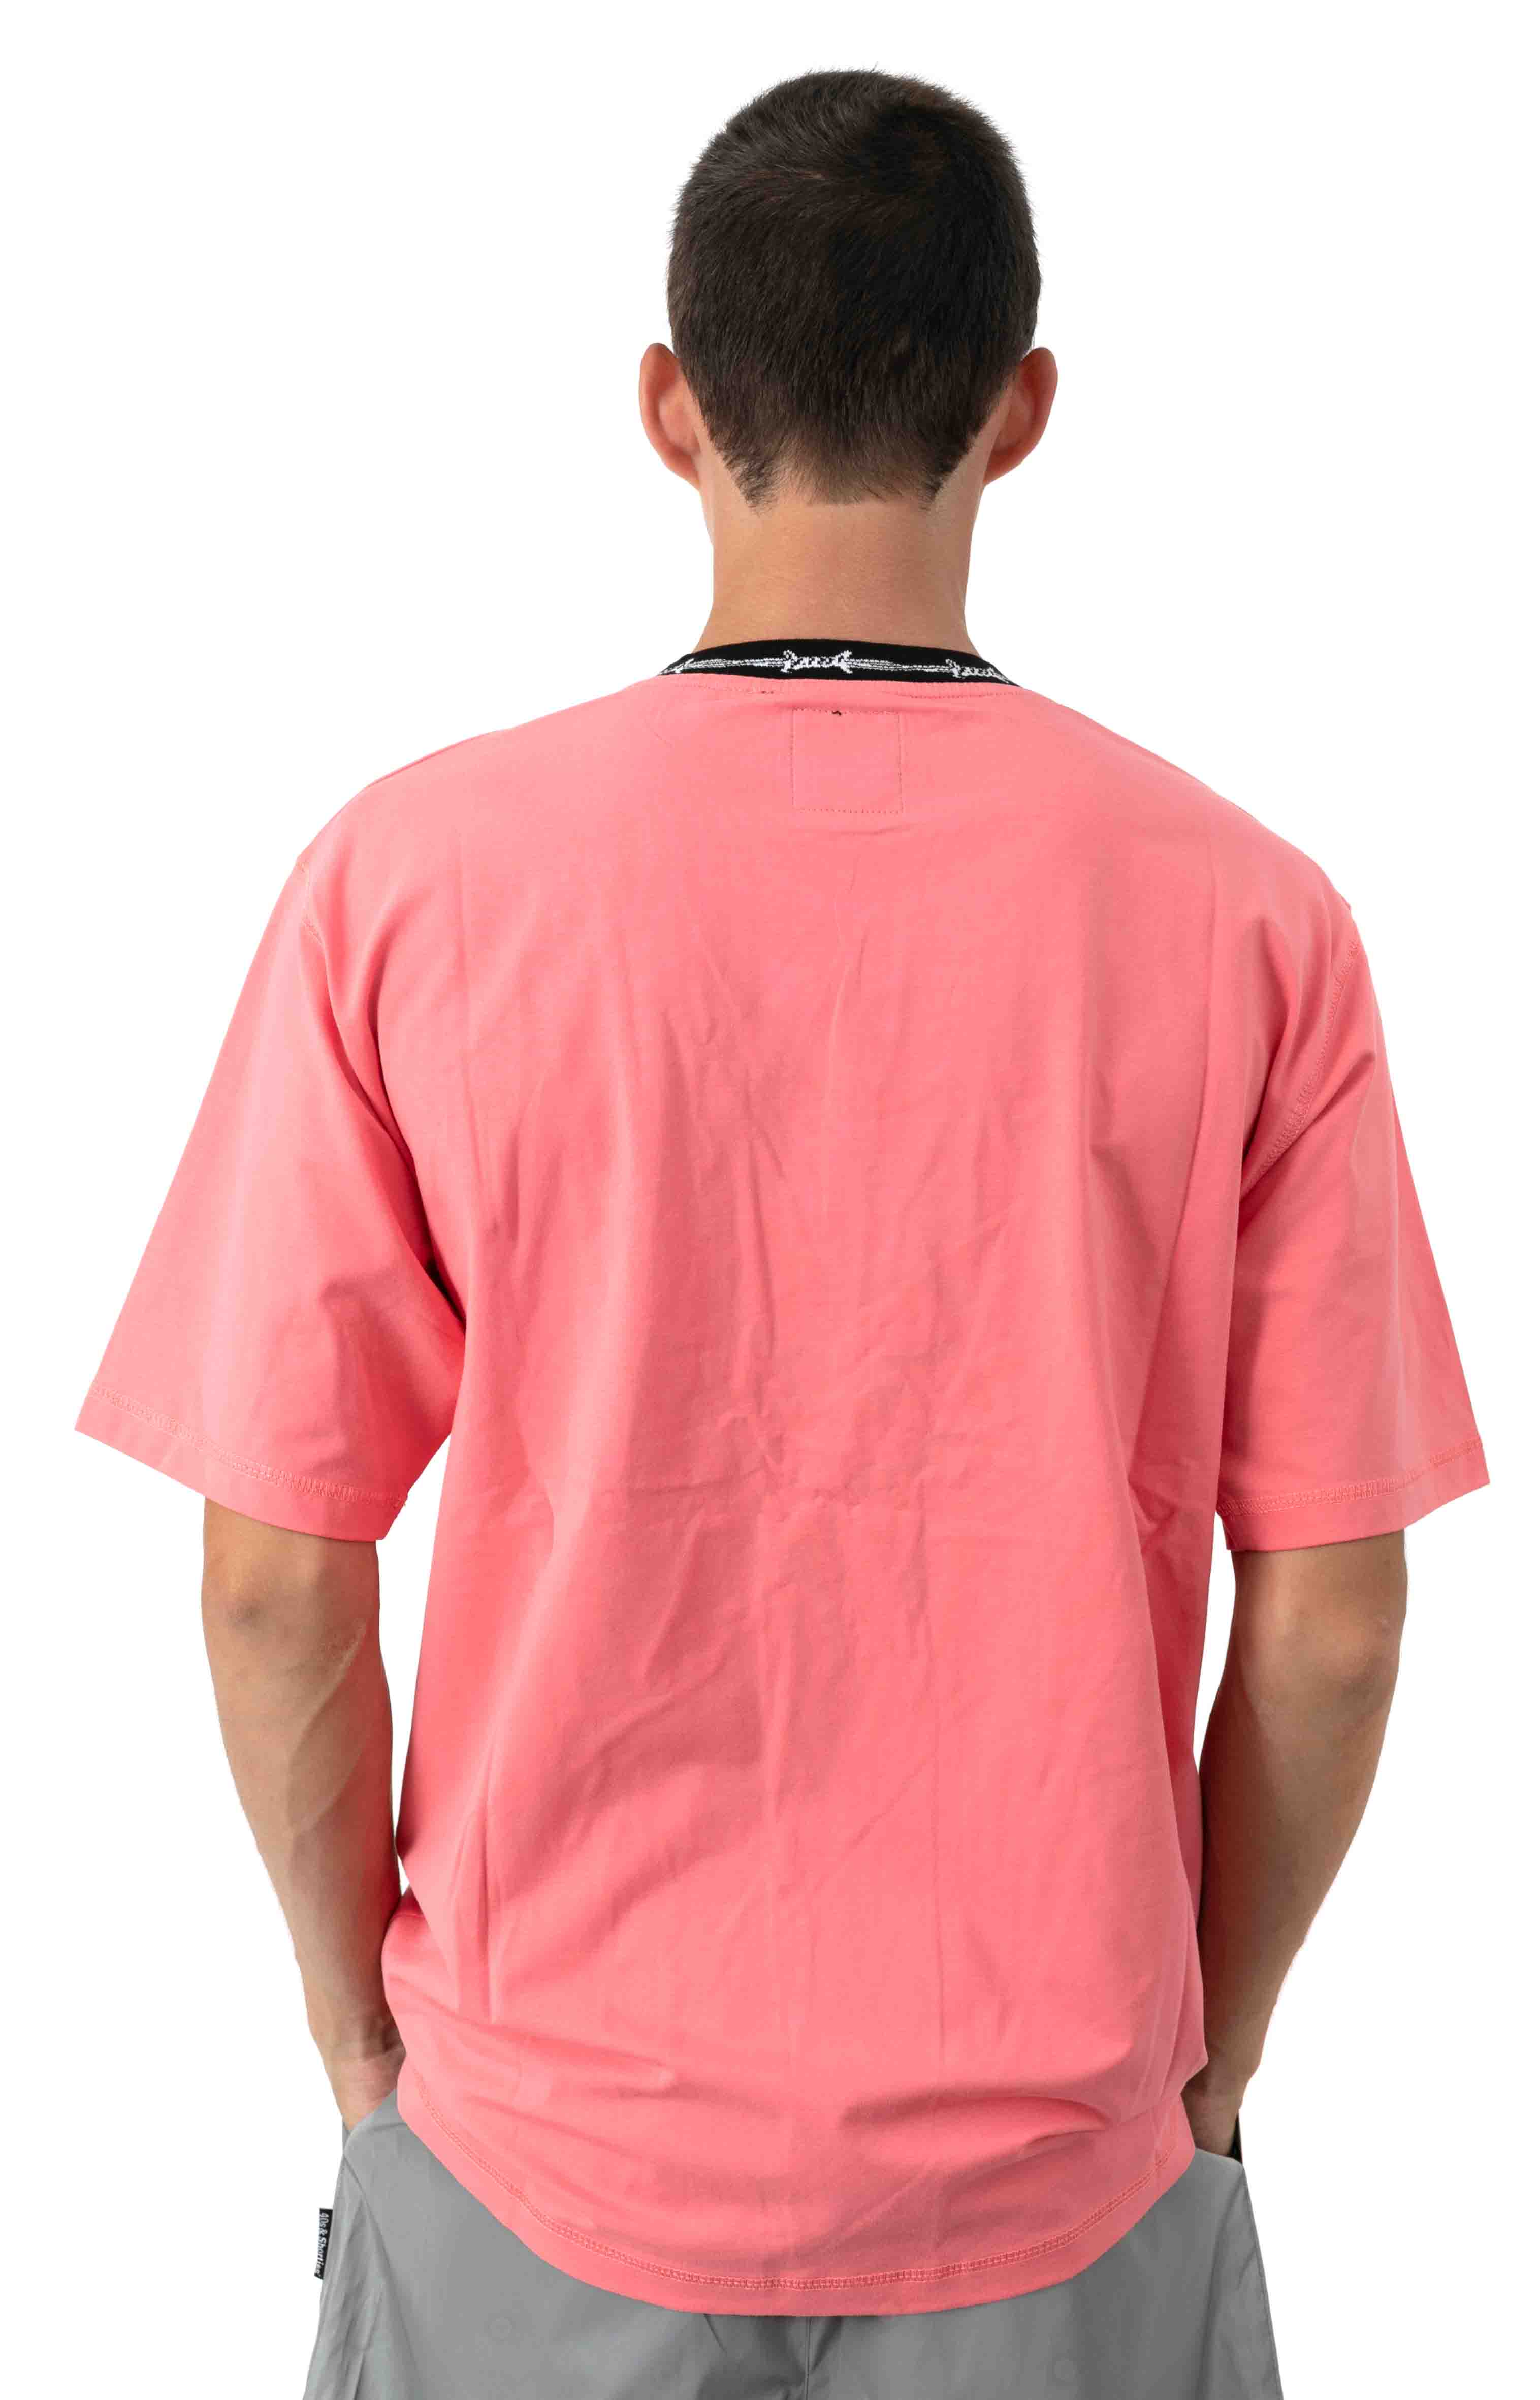 Barbwire Pocket T-Shirt - Coral 3